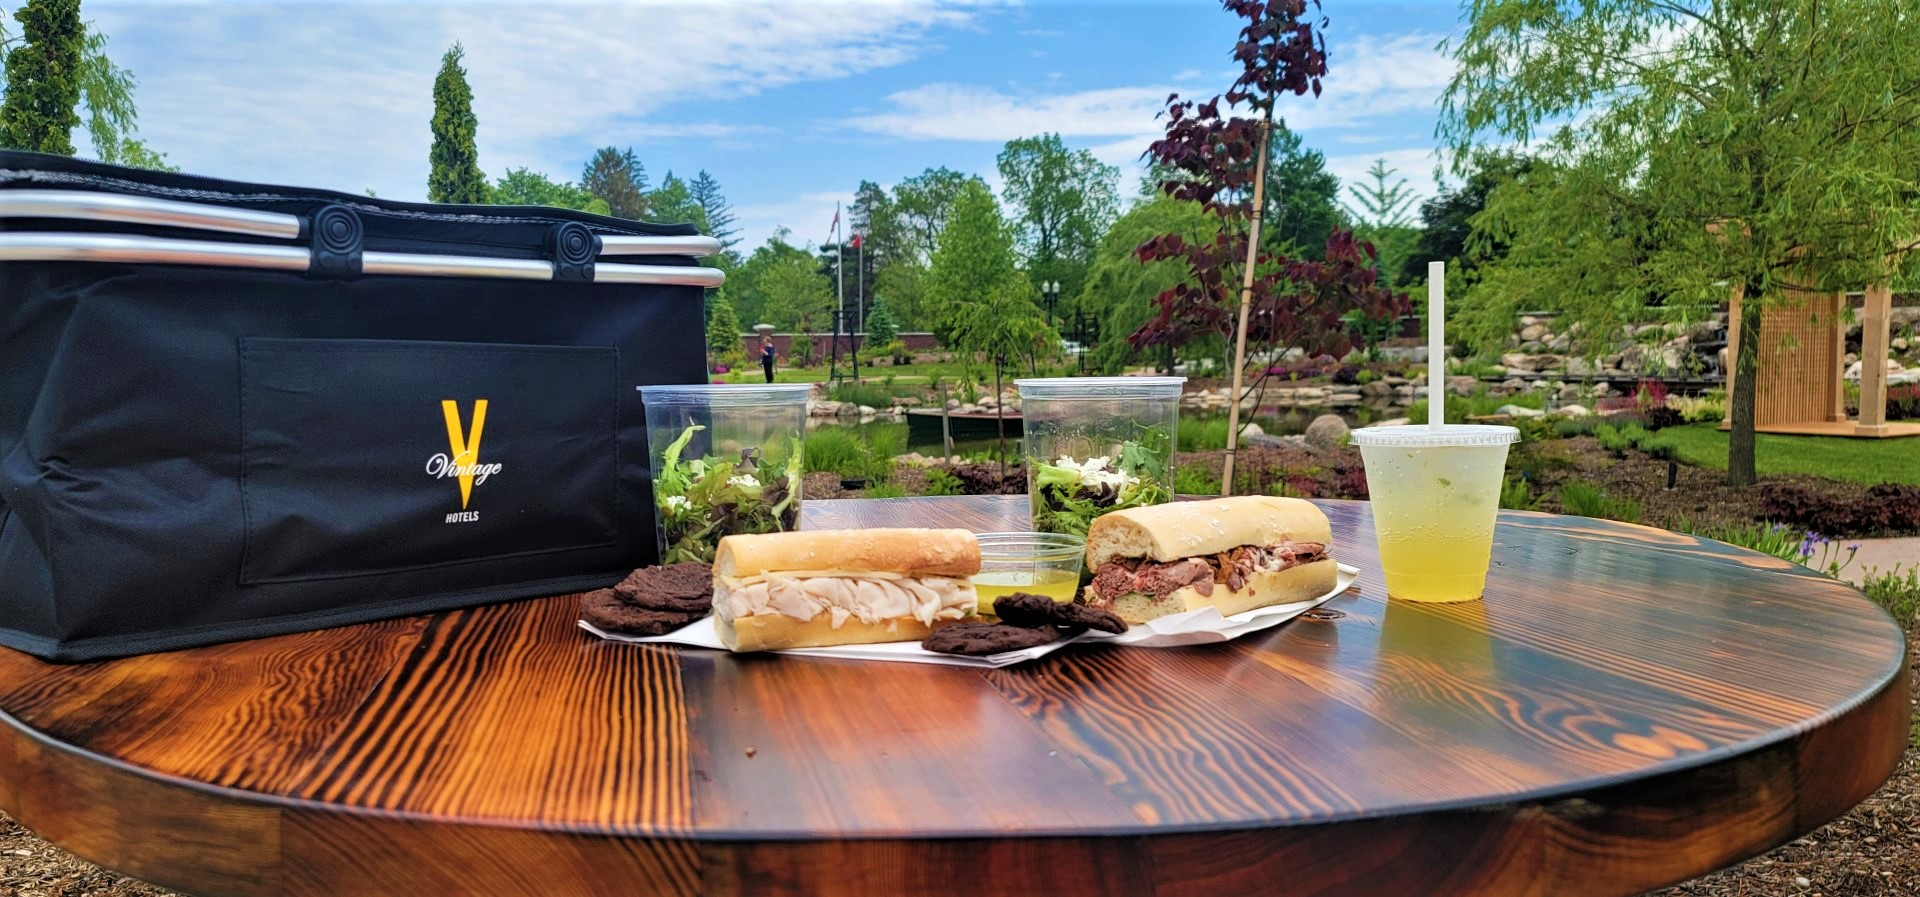 picnic basket and food with a view